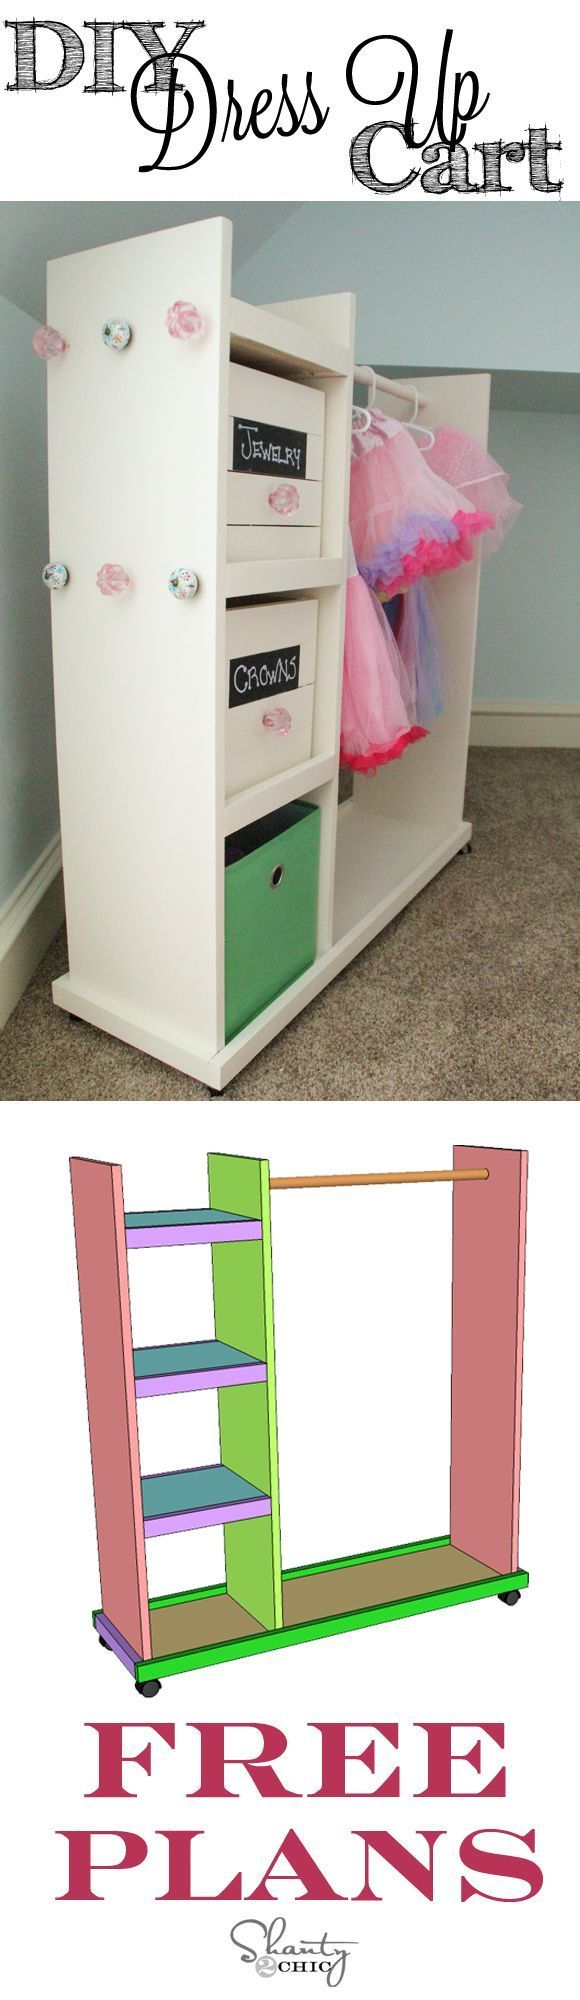 Free Diy Projects 382 Best Woodworking Plans Diy Images On Pinterest Woodworking